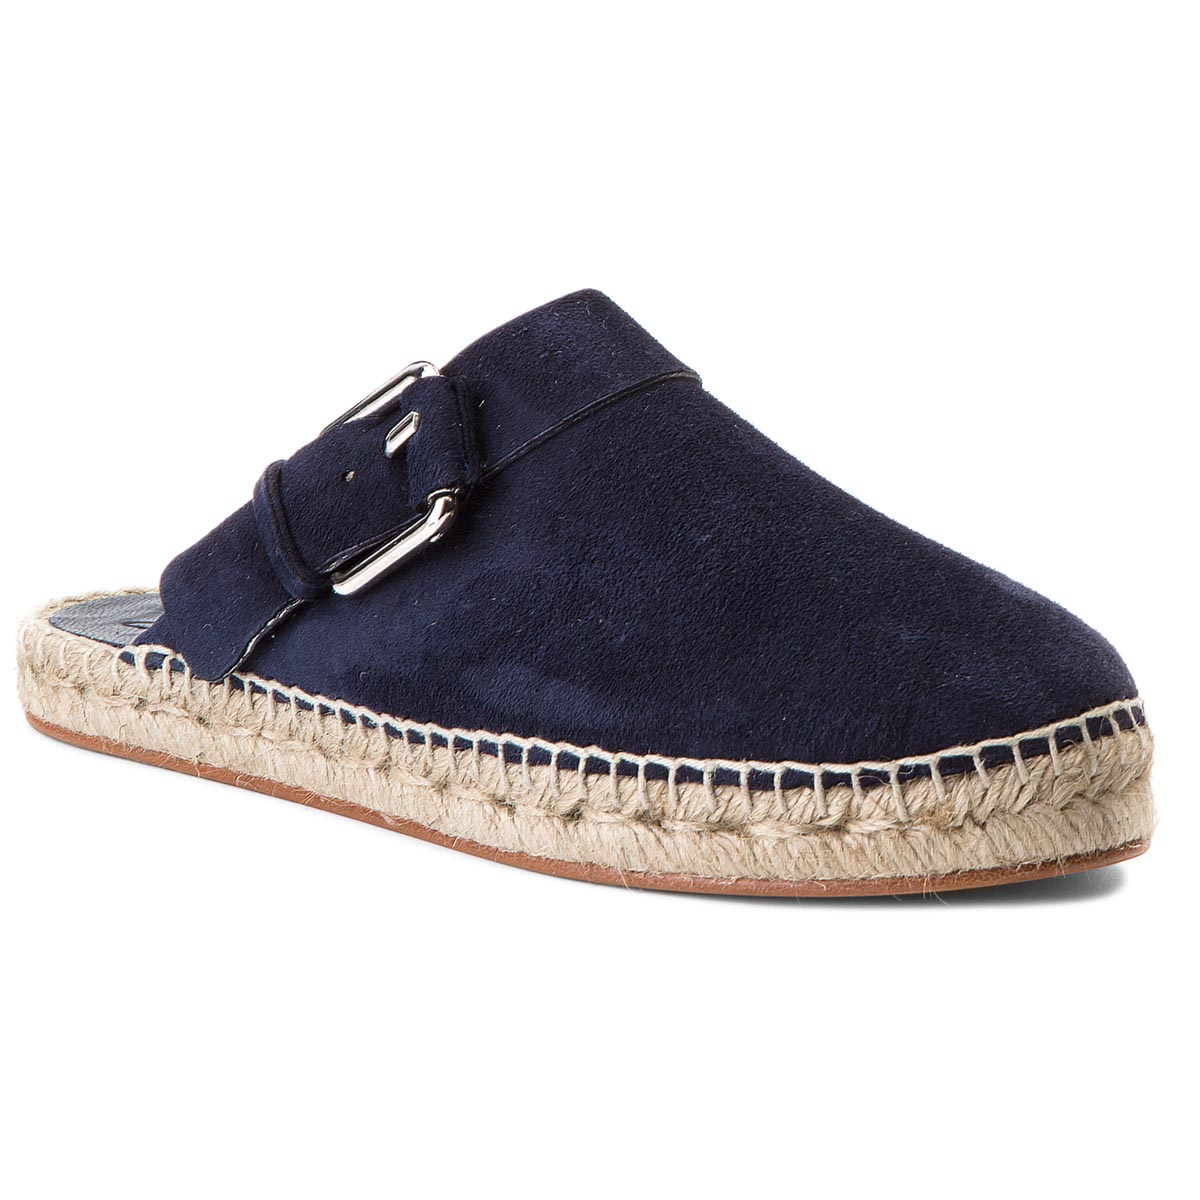 Espadryle WEEKEND MAXMARA - Pagine 55210584600  Navy 003